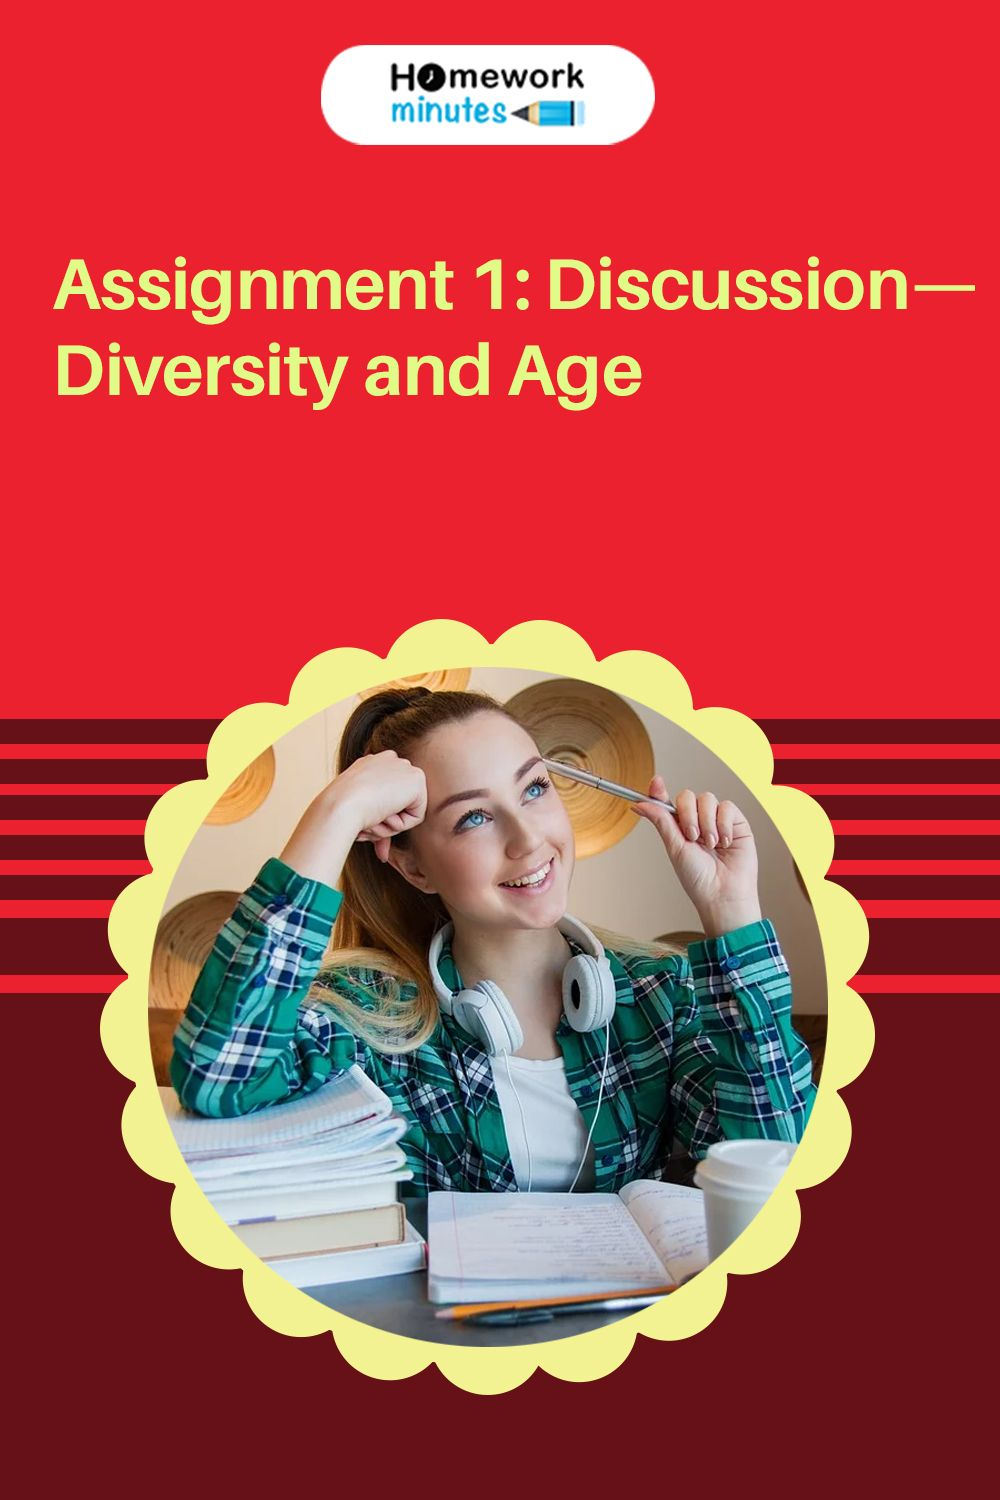 Assignment 1 Discussion—Diversity and Age.jpg in 2020